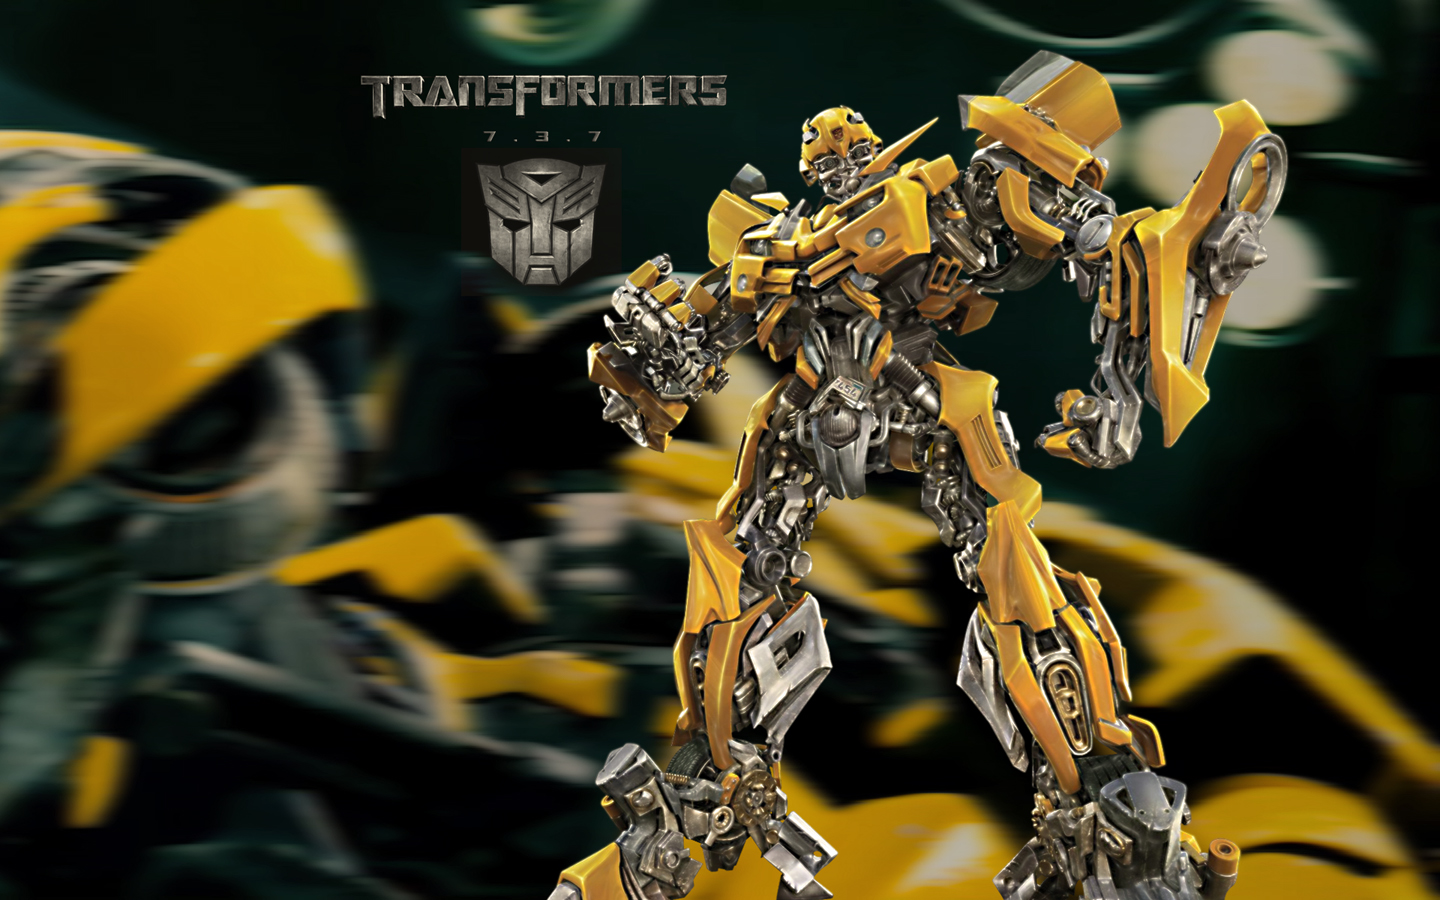 Transformers Wallpaper Autobots  WallpaperSafari